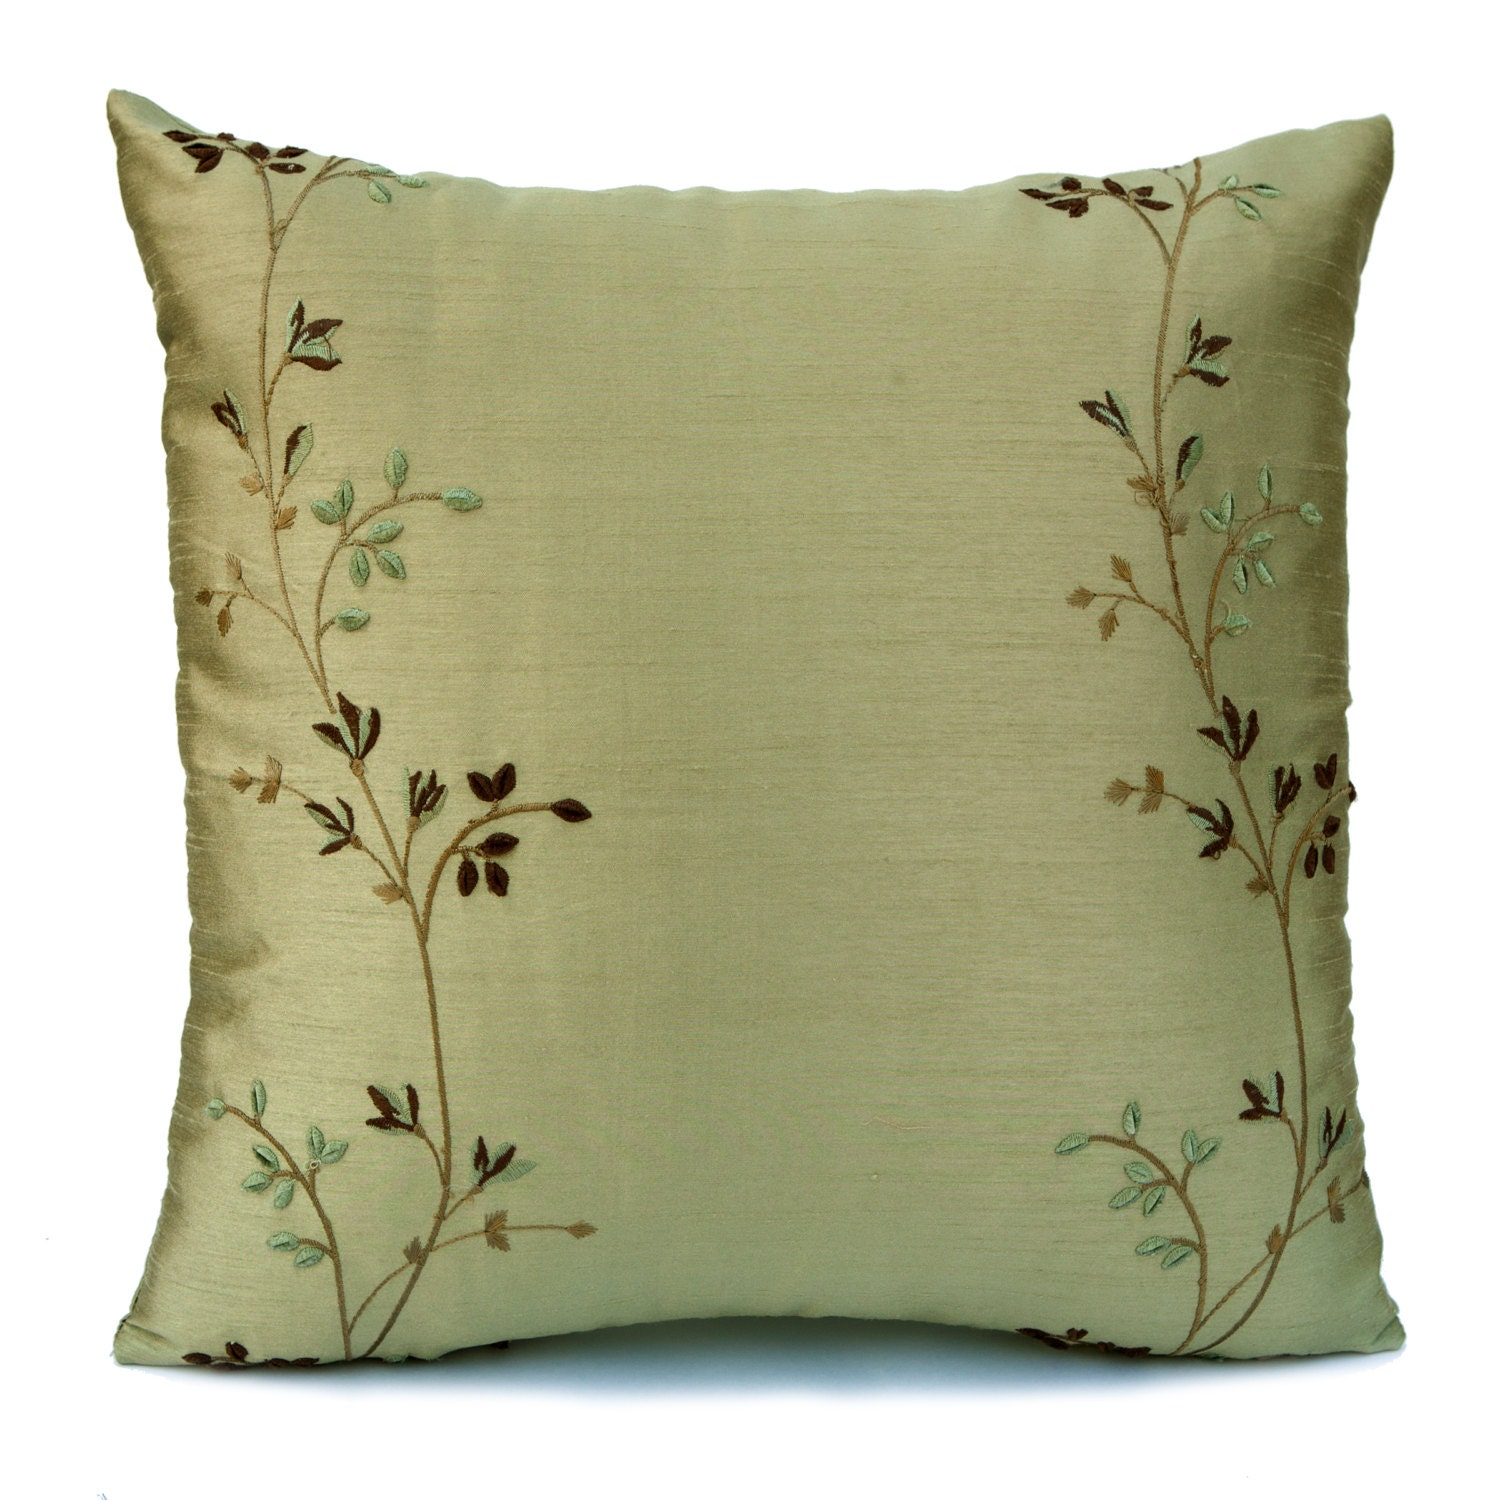 Throw Pillows Linen : Lime Green Pillow Throw Pillow Cover Decorative Pillow